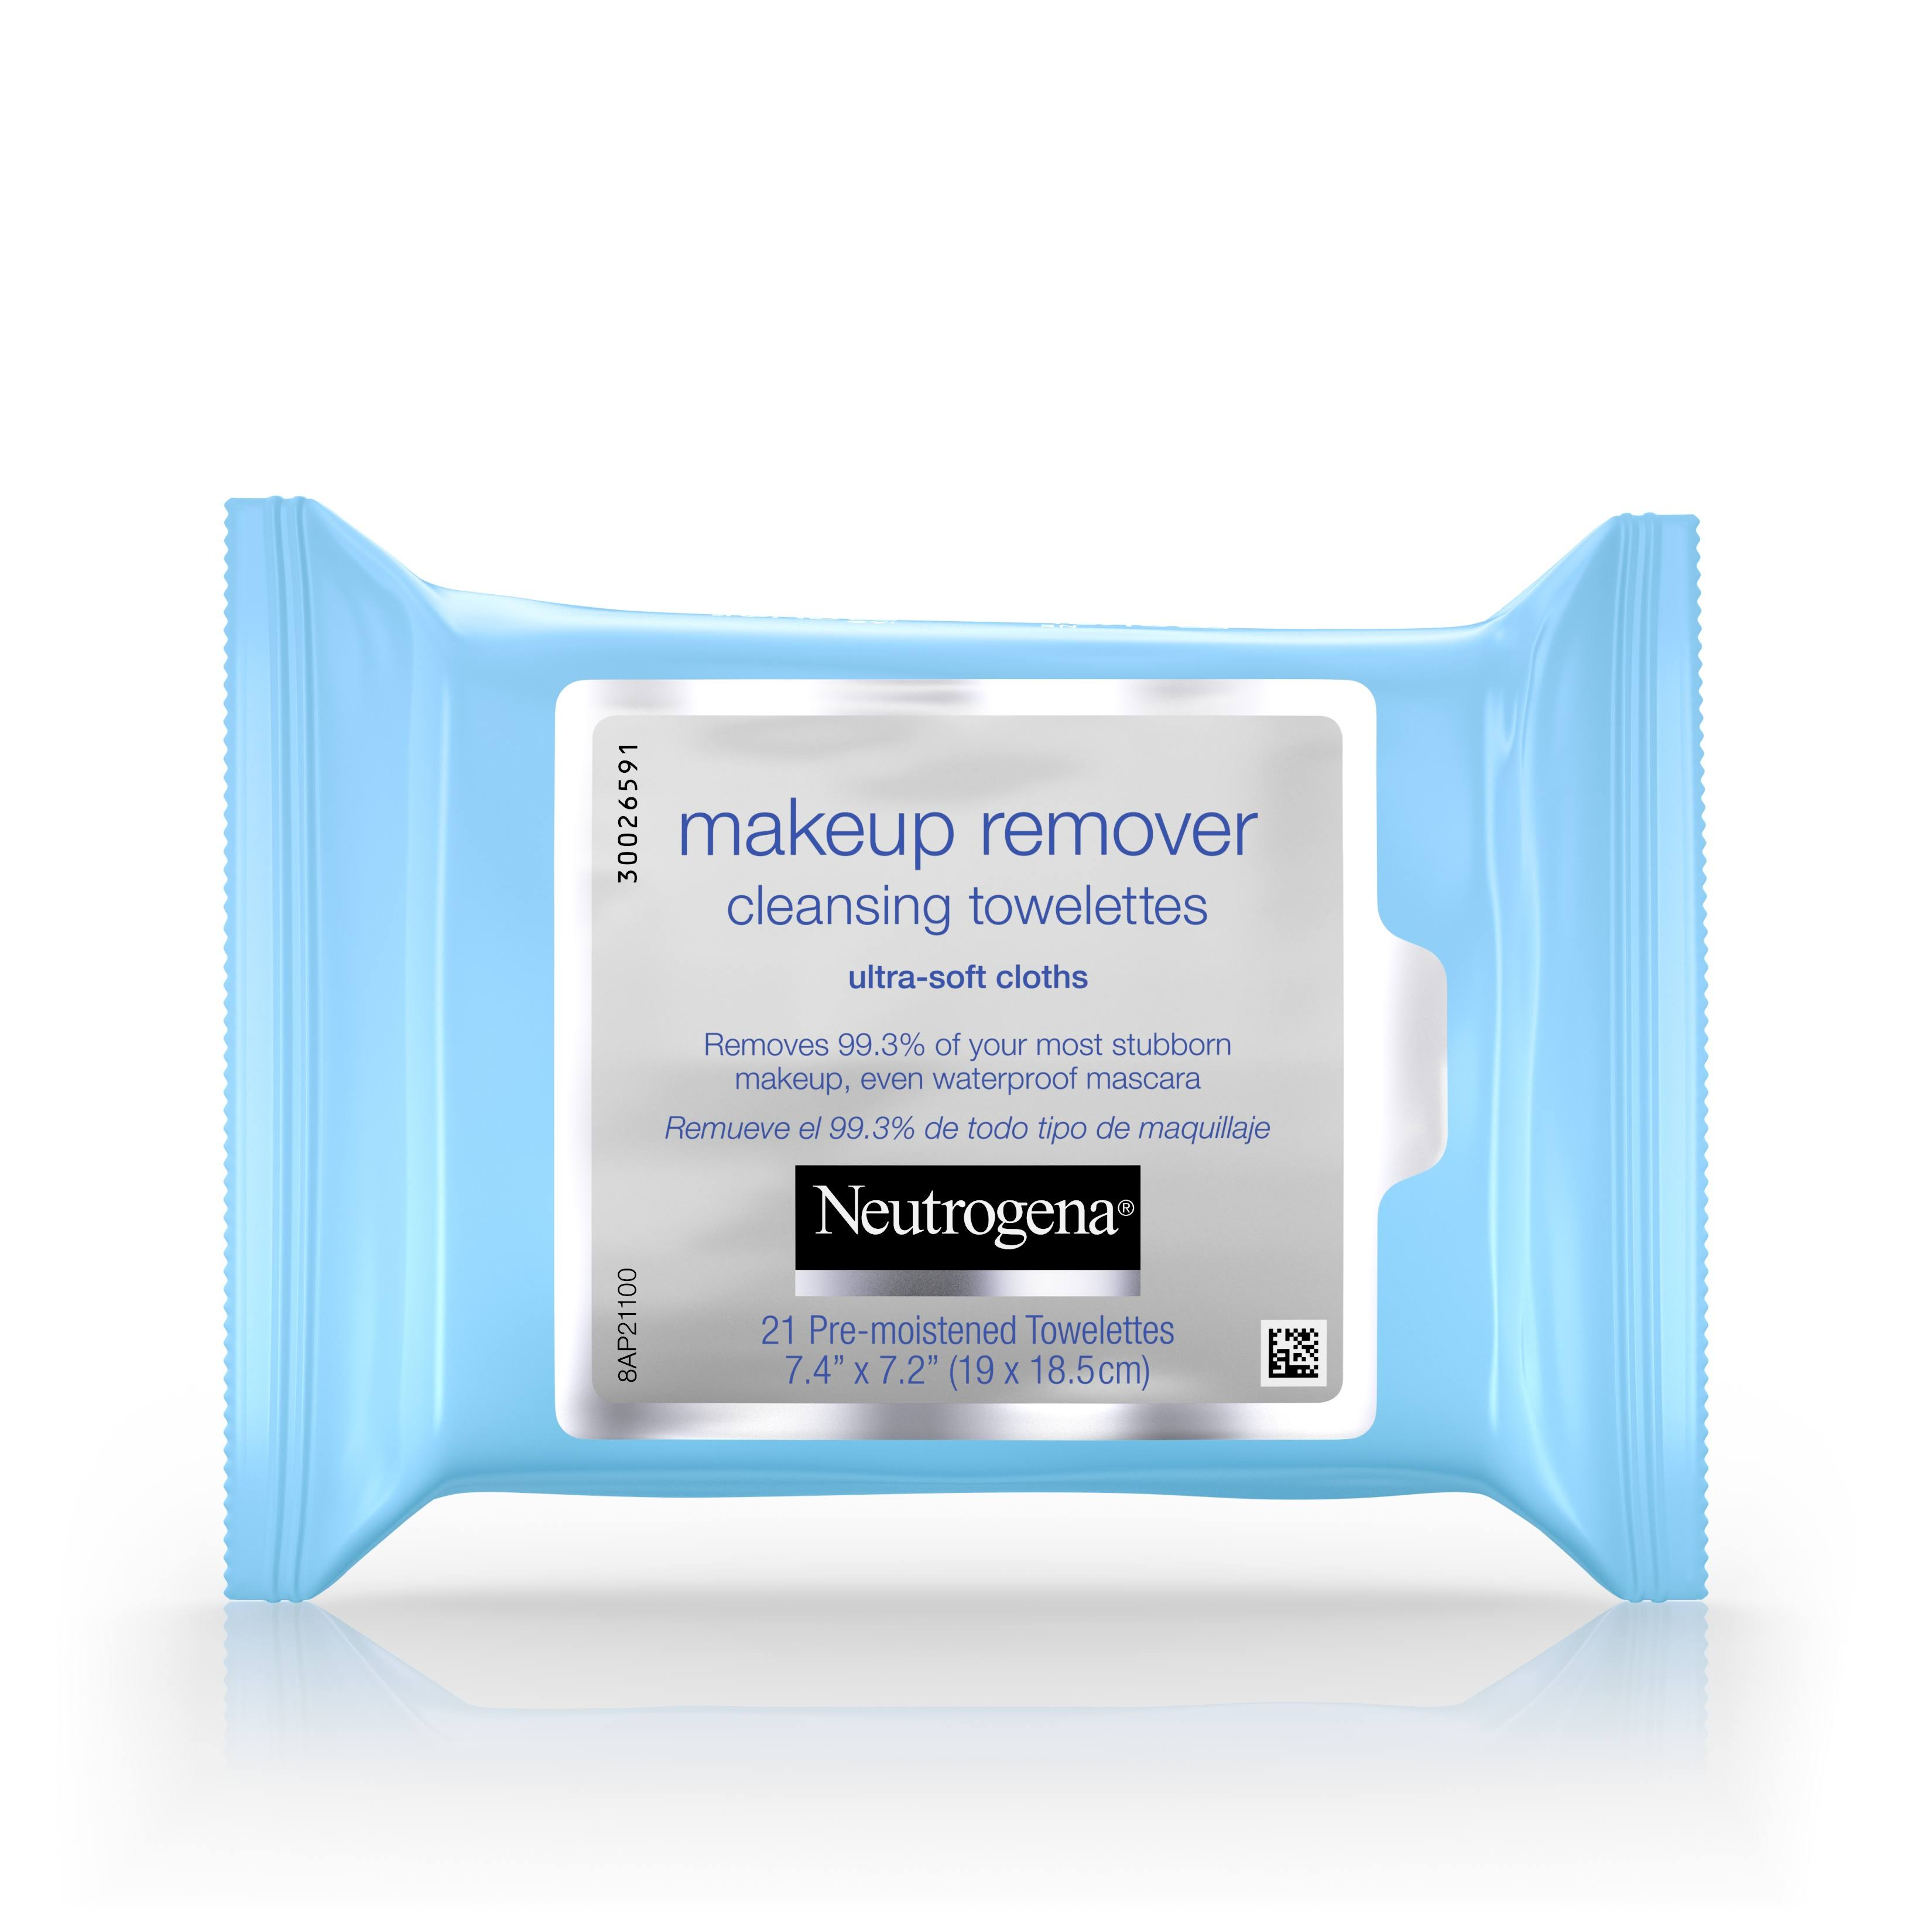 Neutrogena Makeup Remover Cleansing Towelettes - 21pk